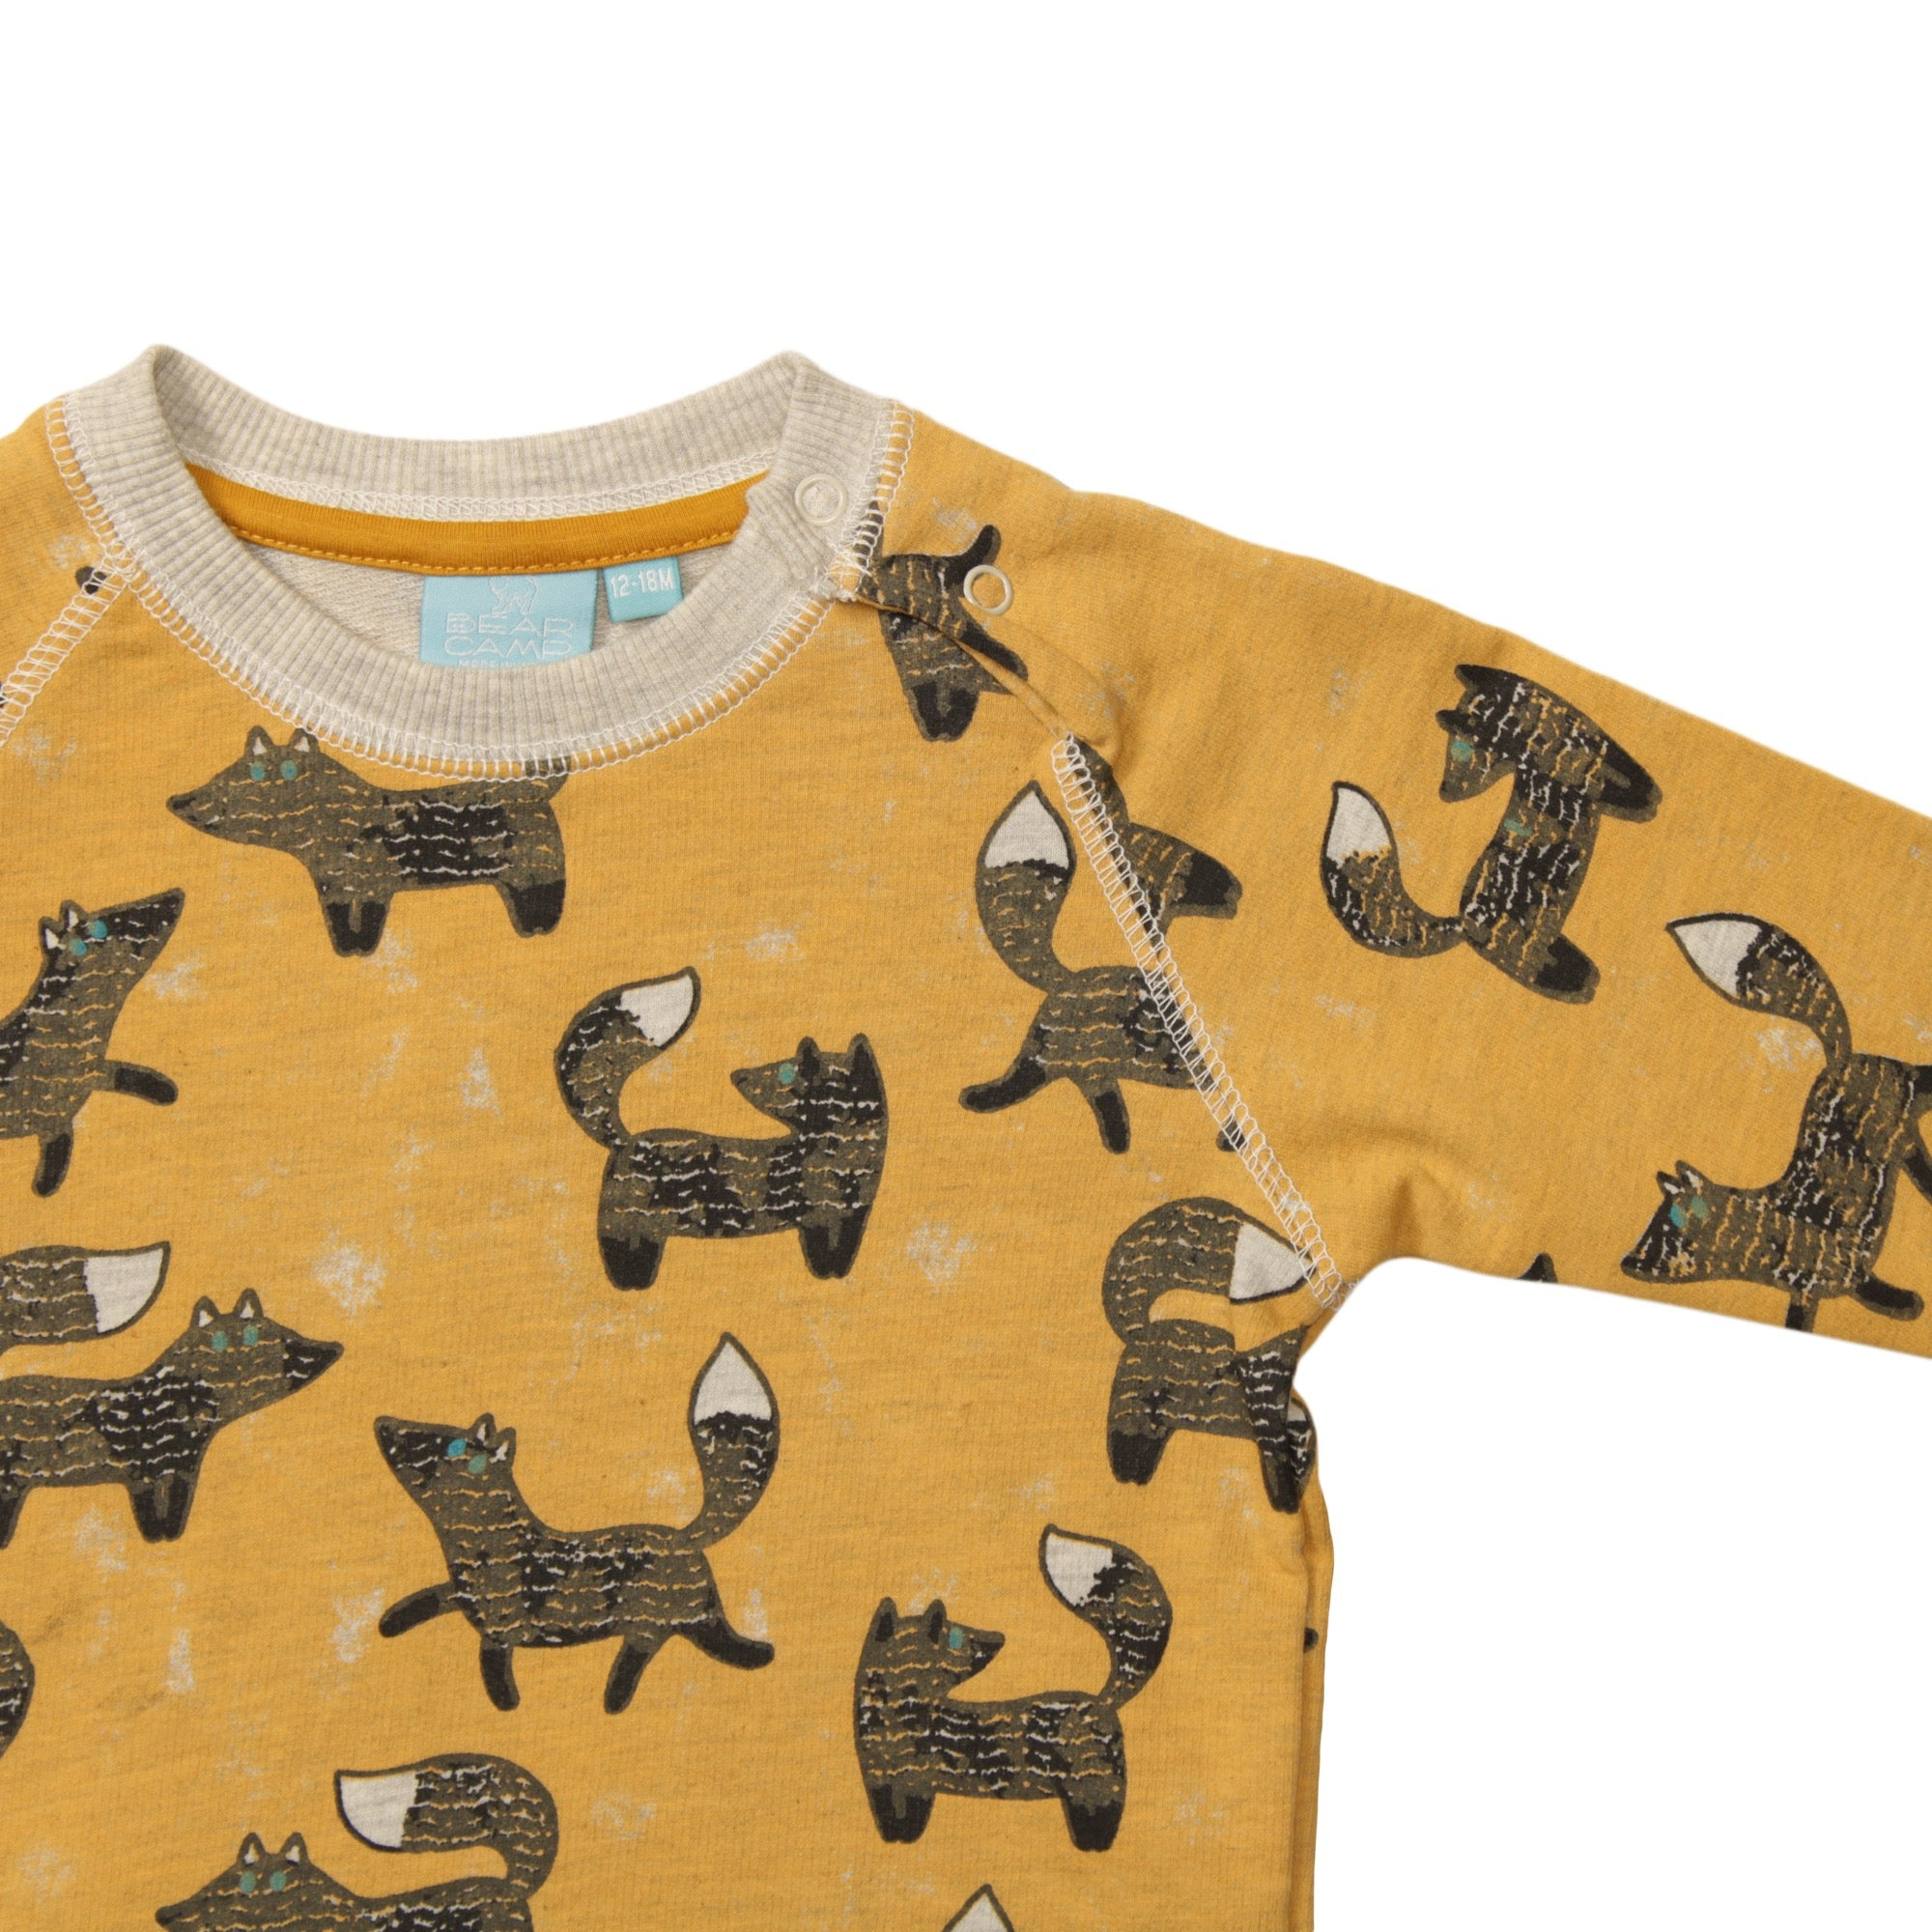 Derek Crew Neck Sweatshirt Toddler